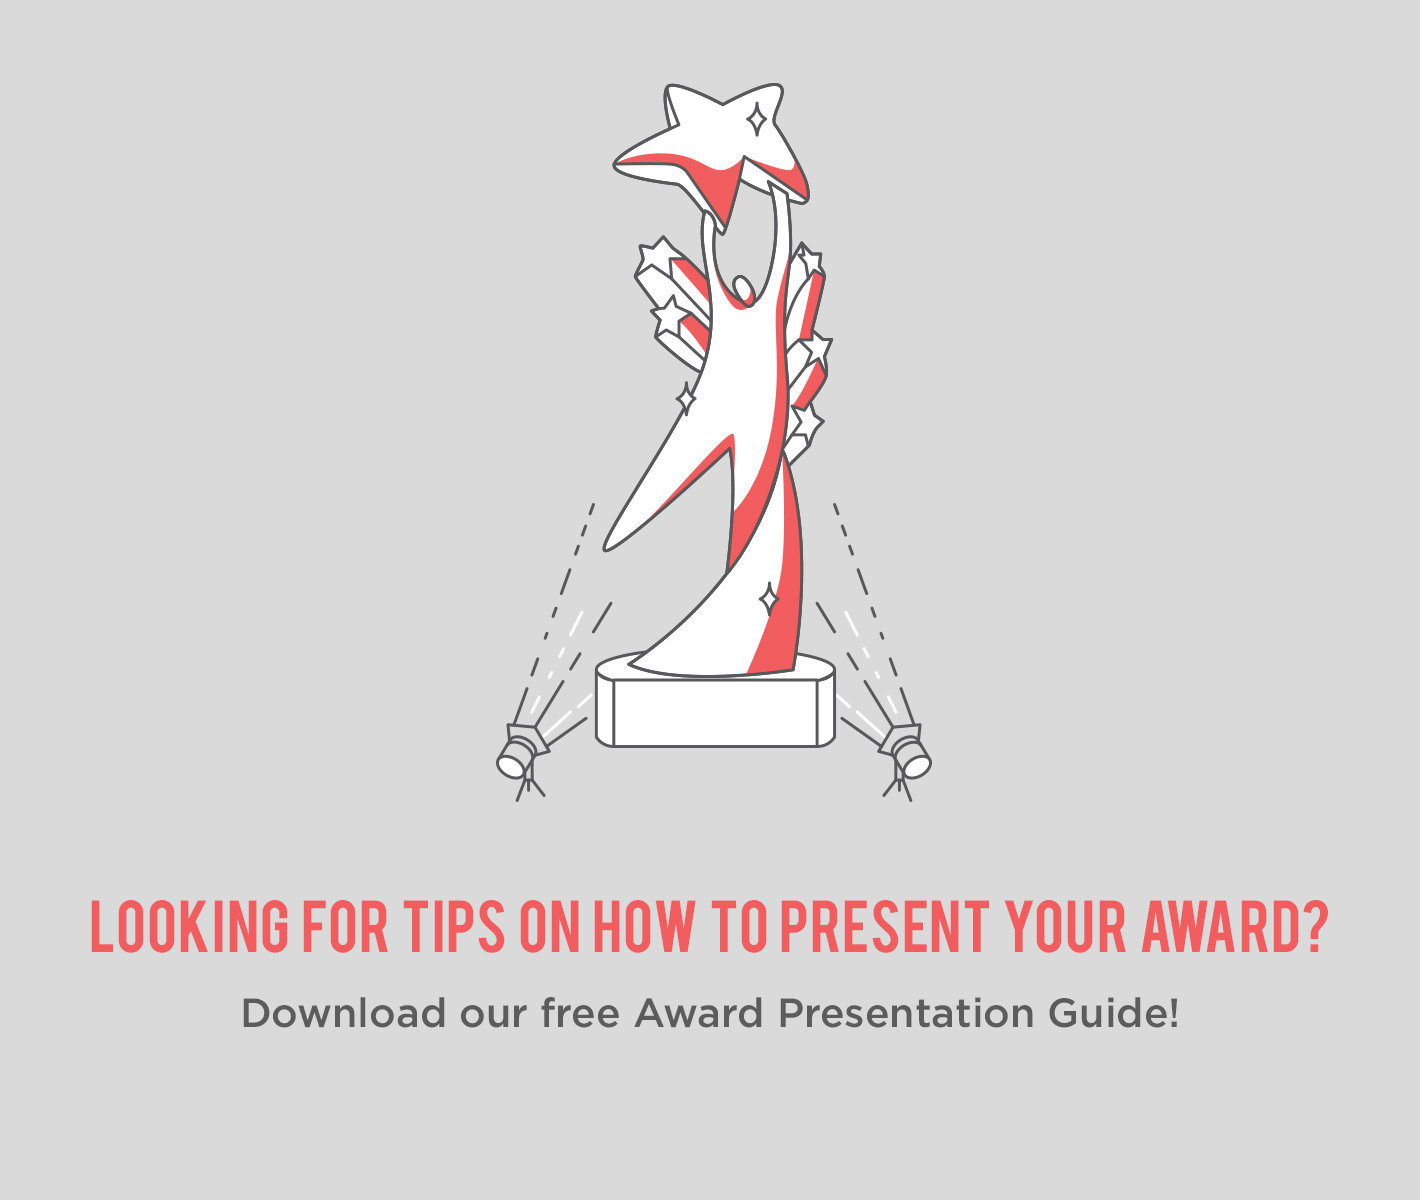 Tips on how to present your awards